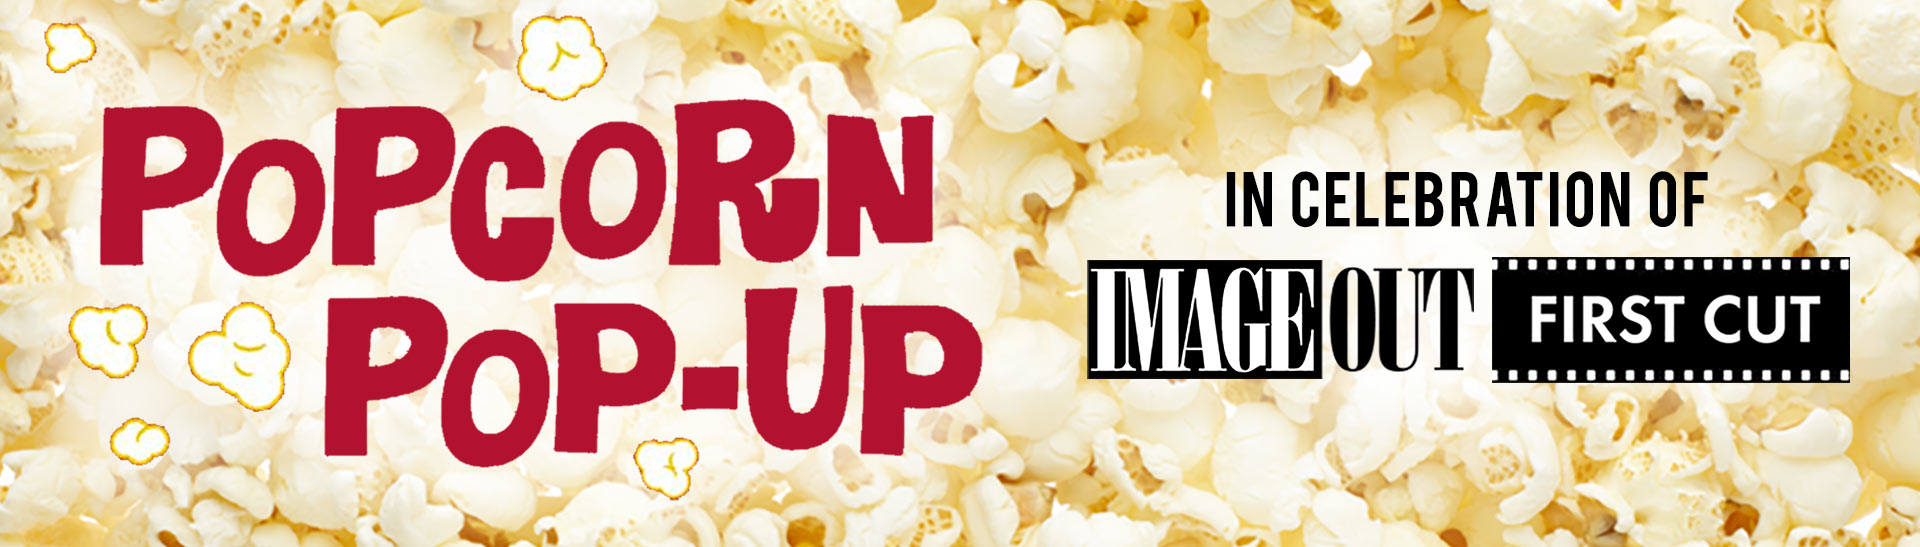 Popcorn Pop-Up in support of ImageOut